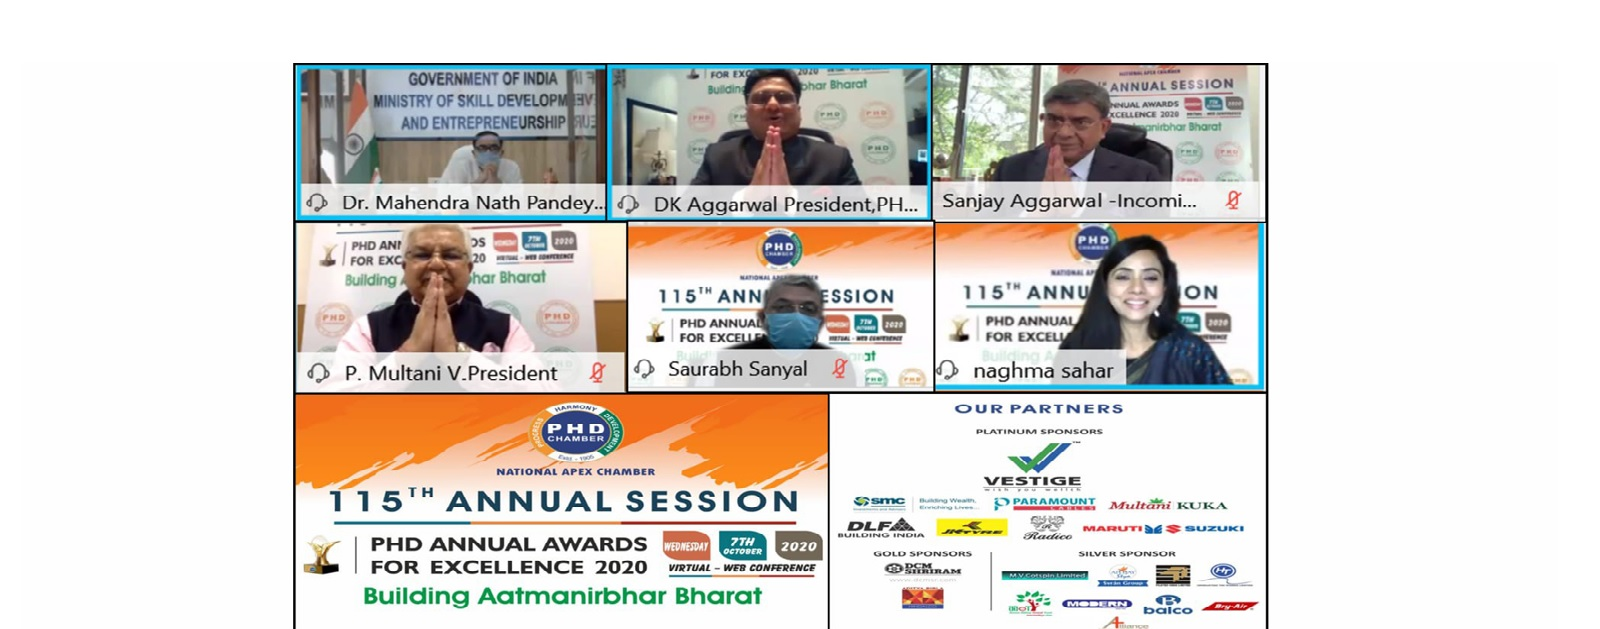 3rd Session – Skilling India for Aatmanirbhar Bharat